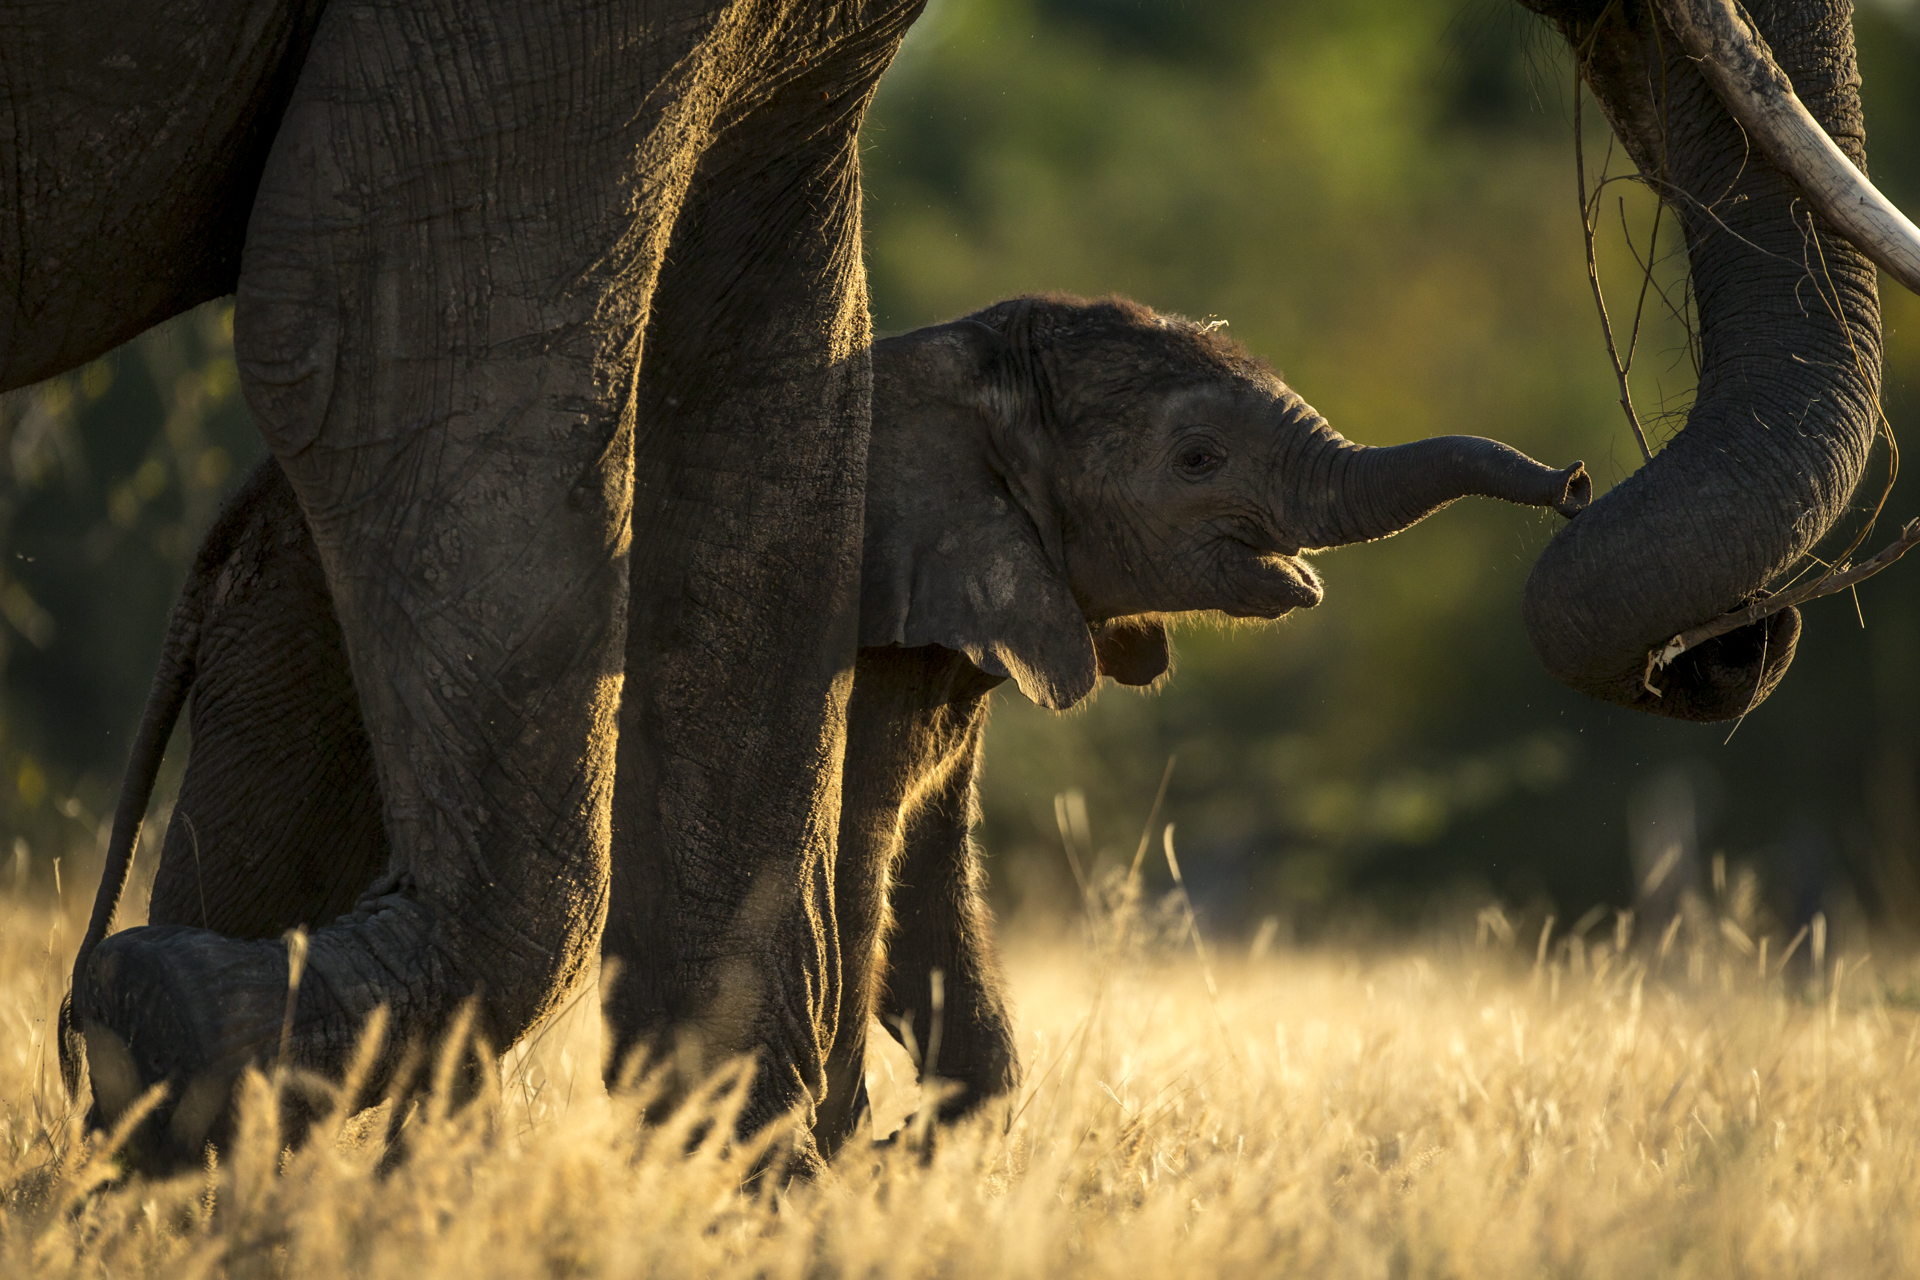 A young elephant calf reaches to smell the food its mother holds in her trunk.